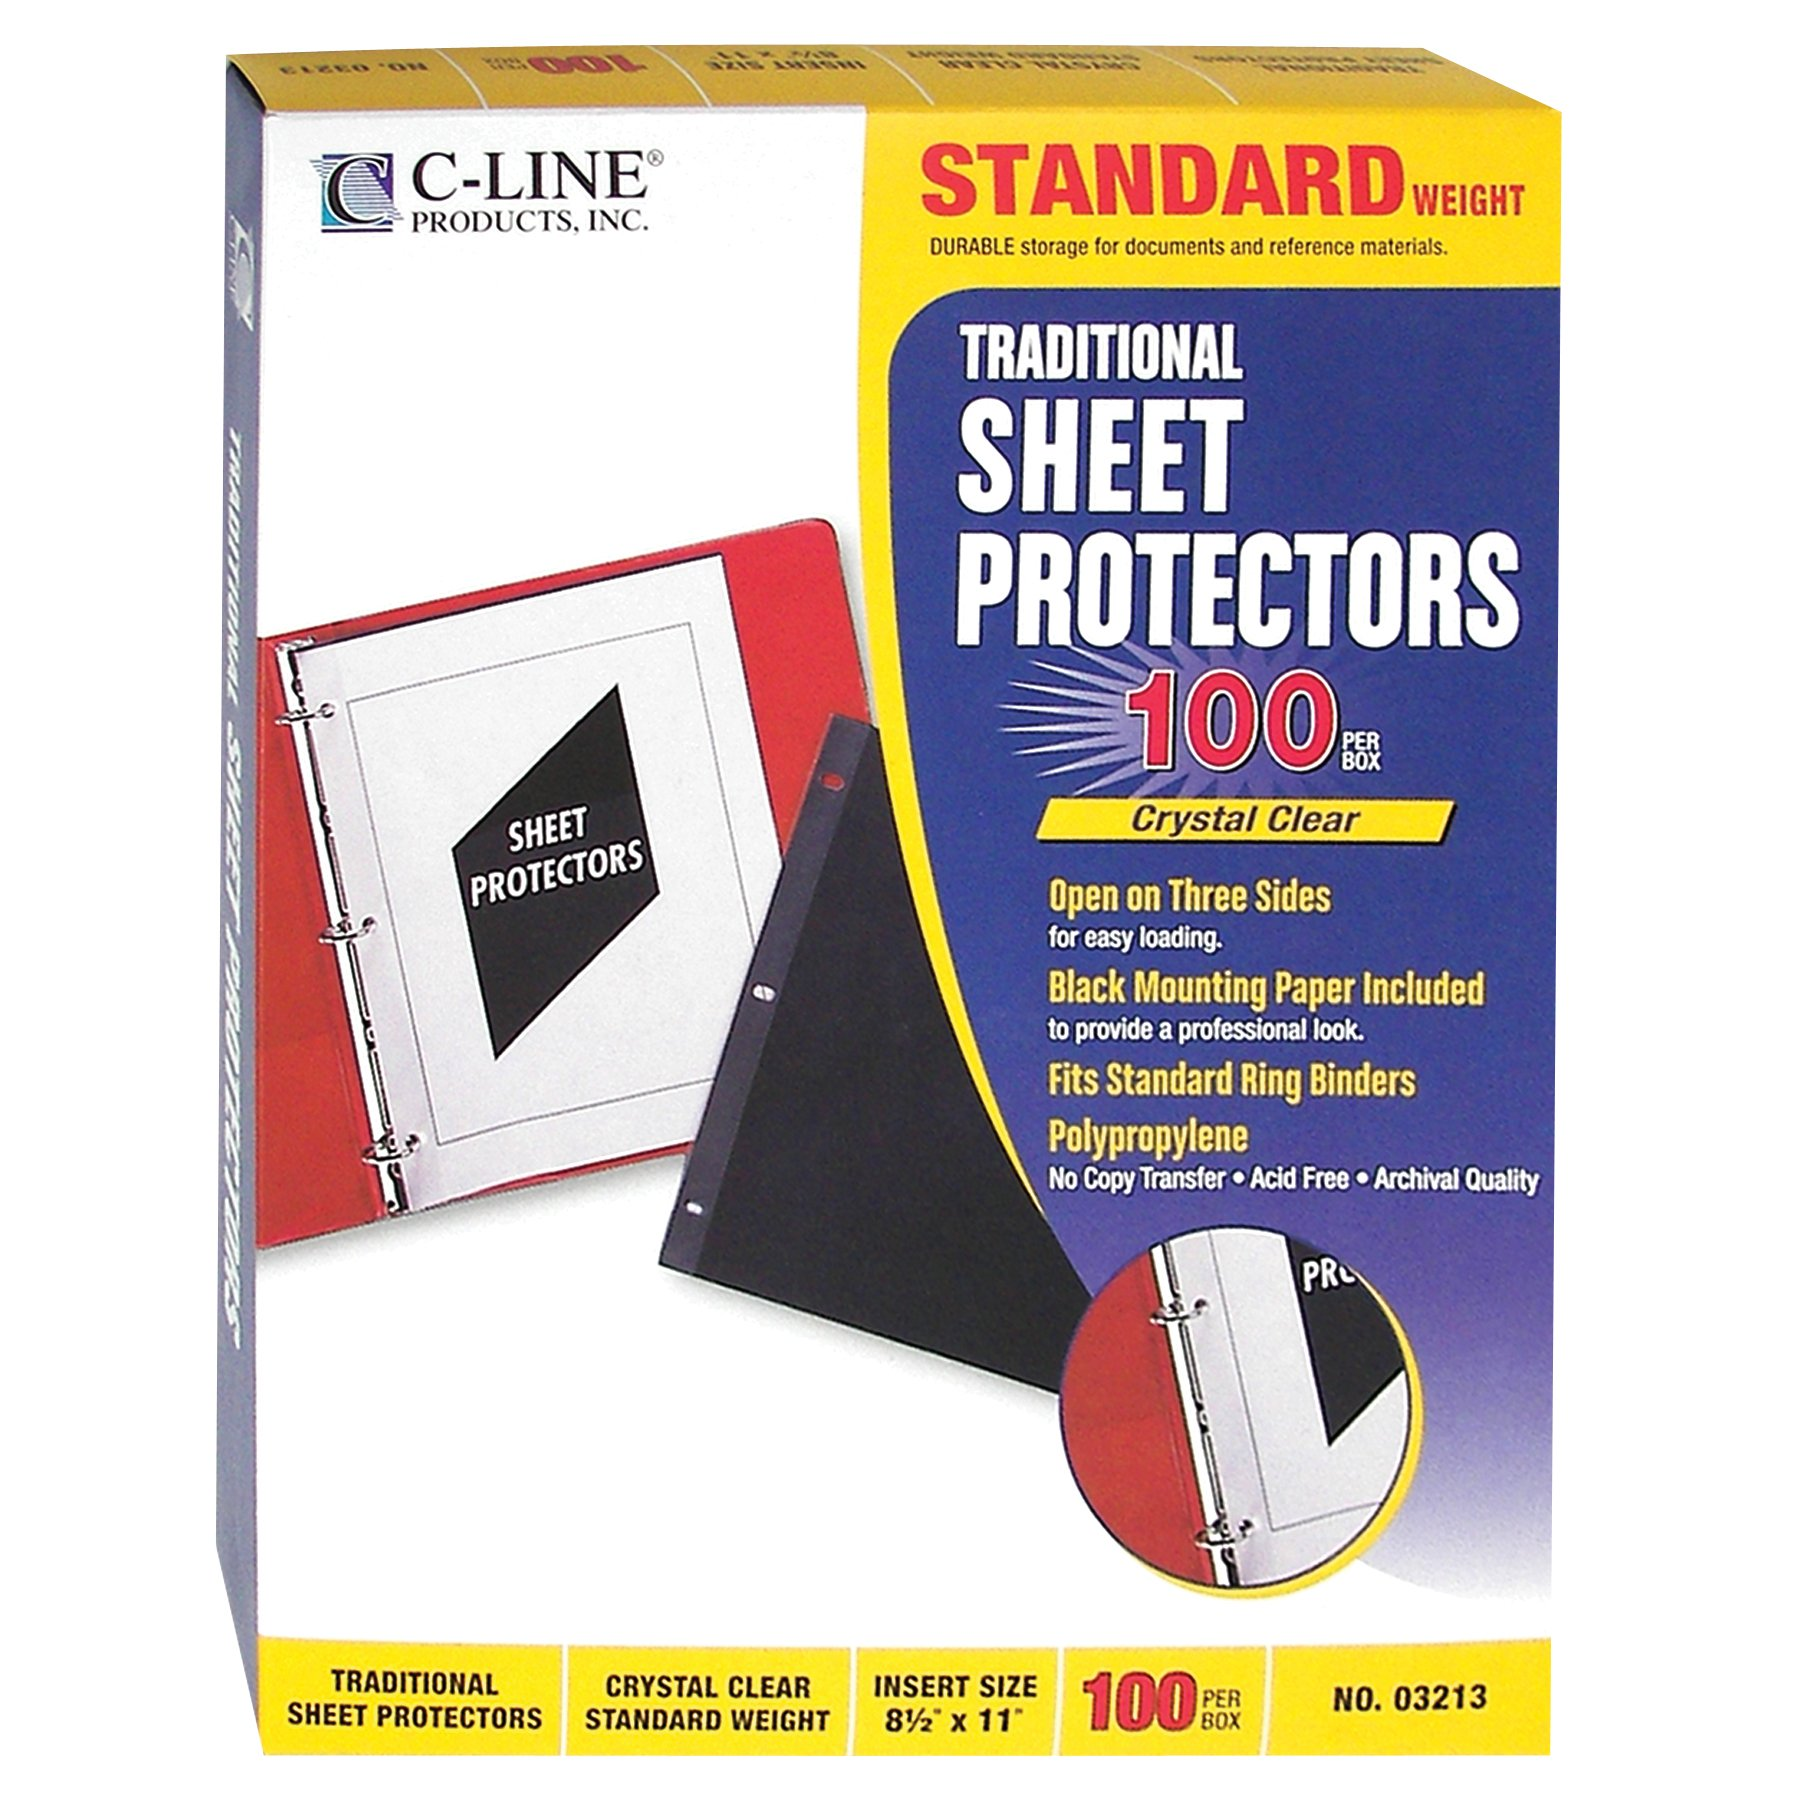 C-Line Traditional Standard Weight Poly Sheet Protectors, Clear, 8.5 x 11 Inches, 100 per Box (03213) by C-Line (Image #1)